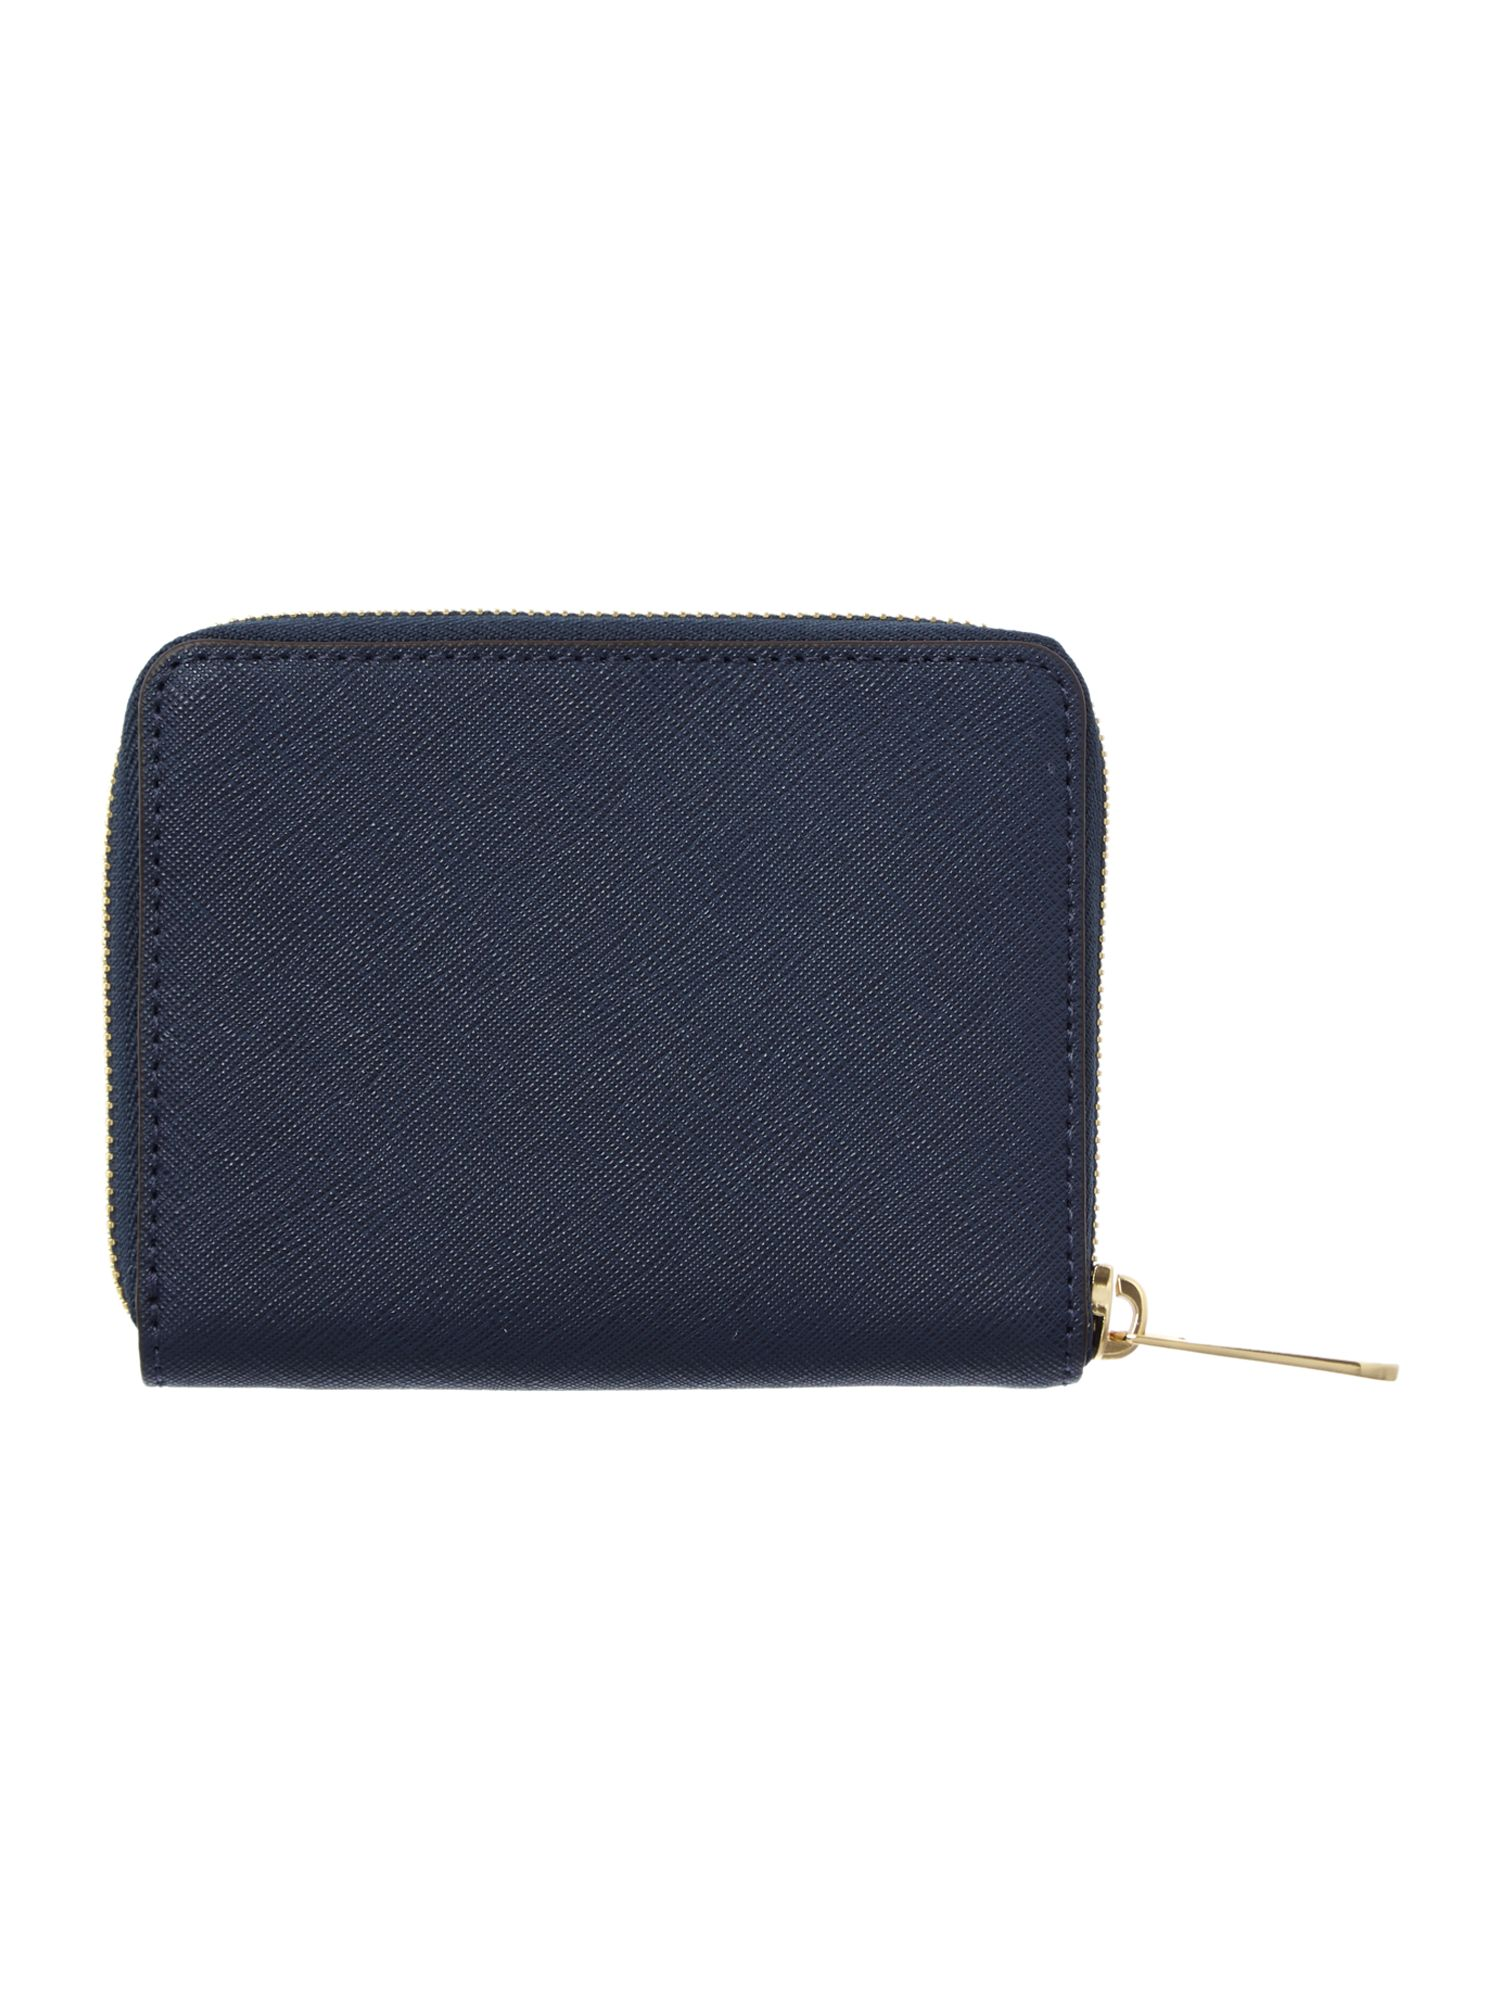 Jet Set Travel navy medium zip around purse